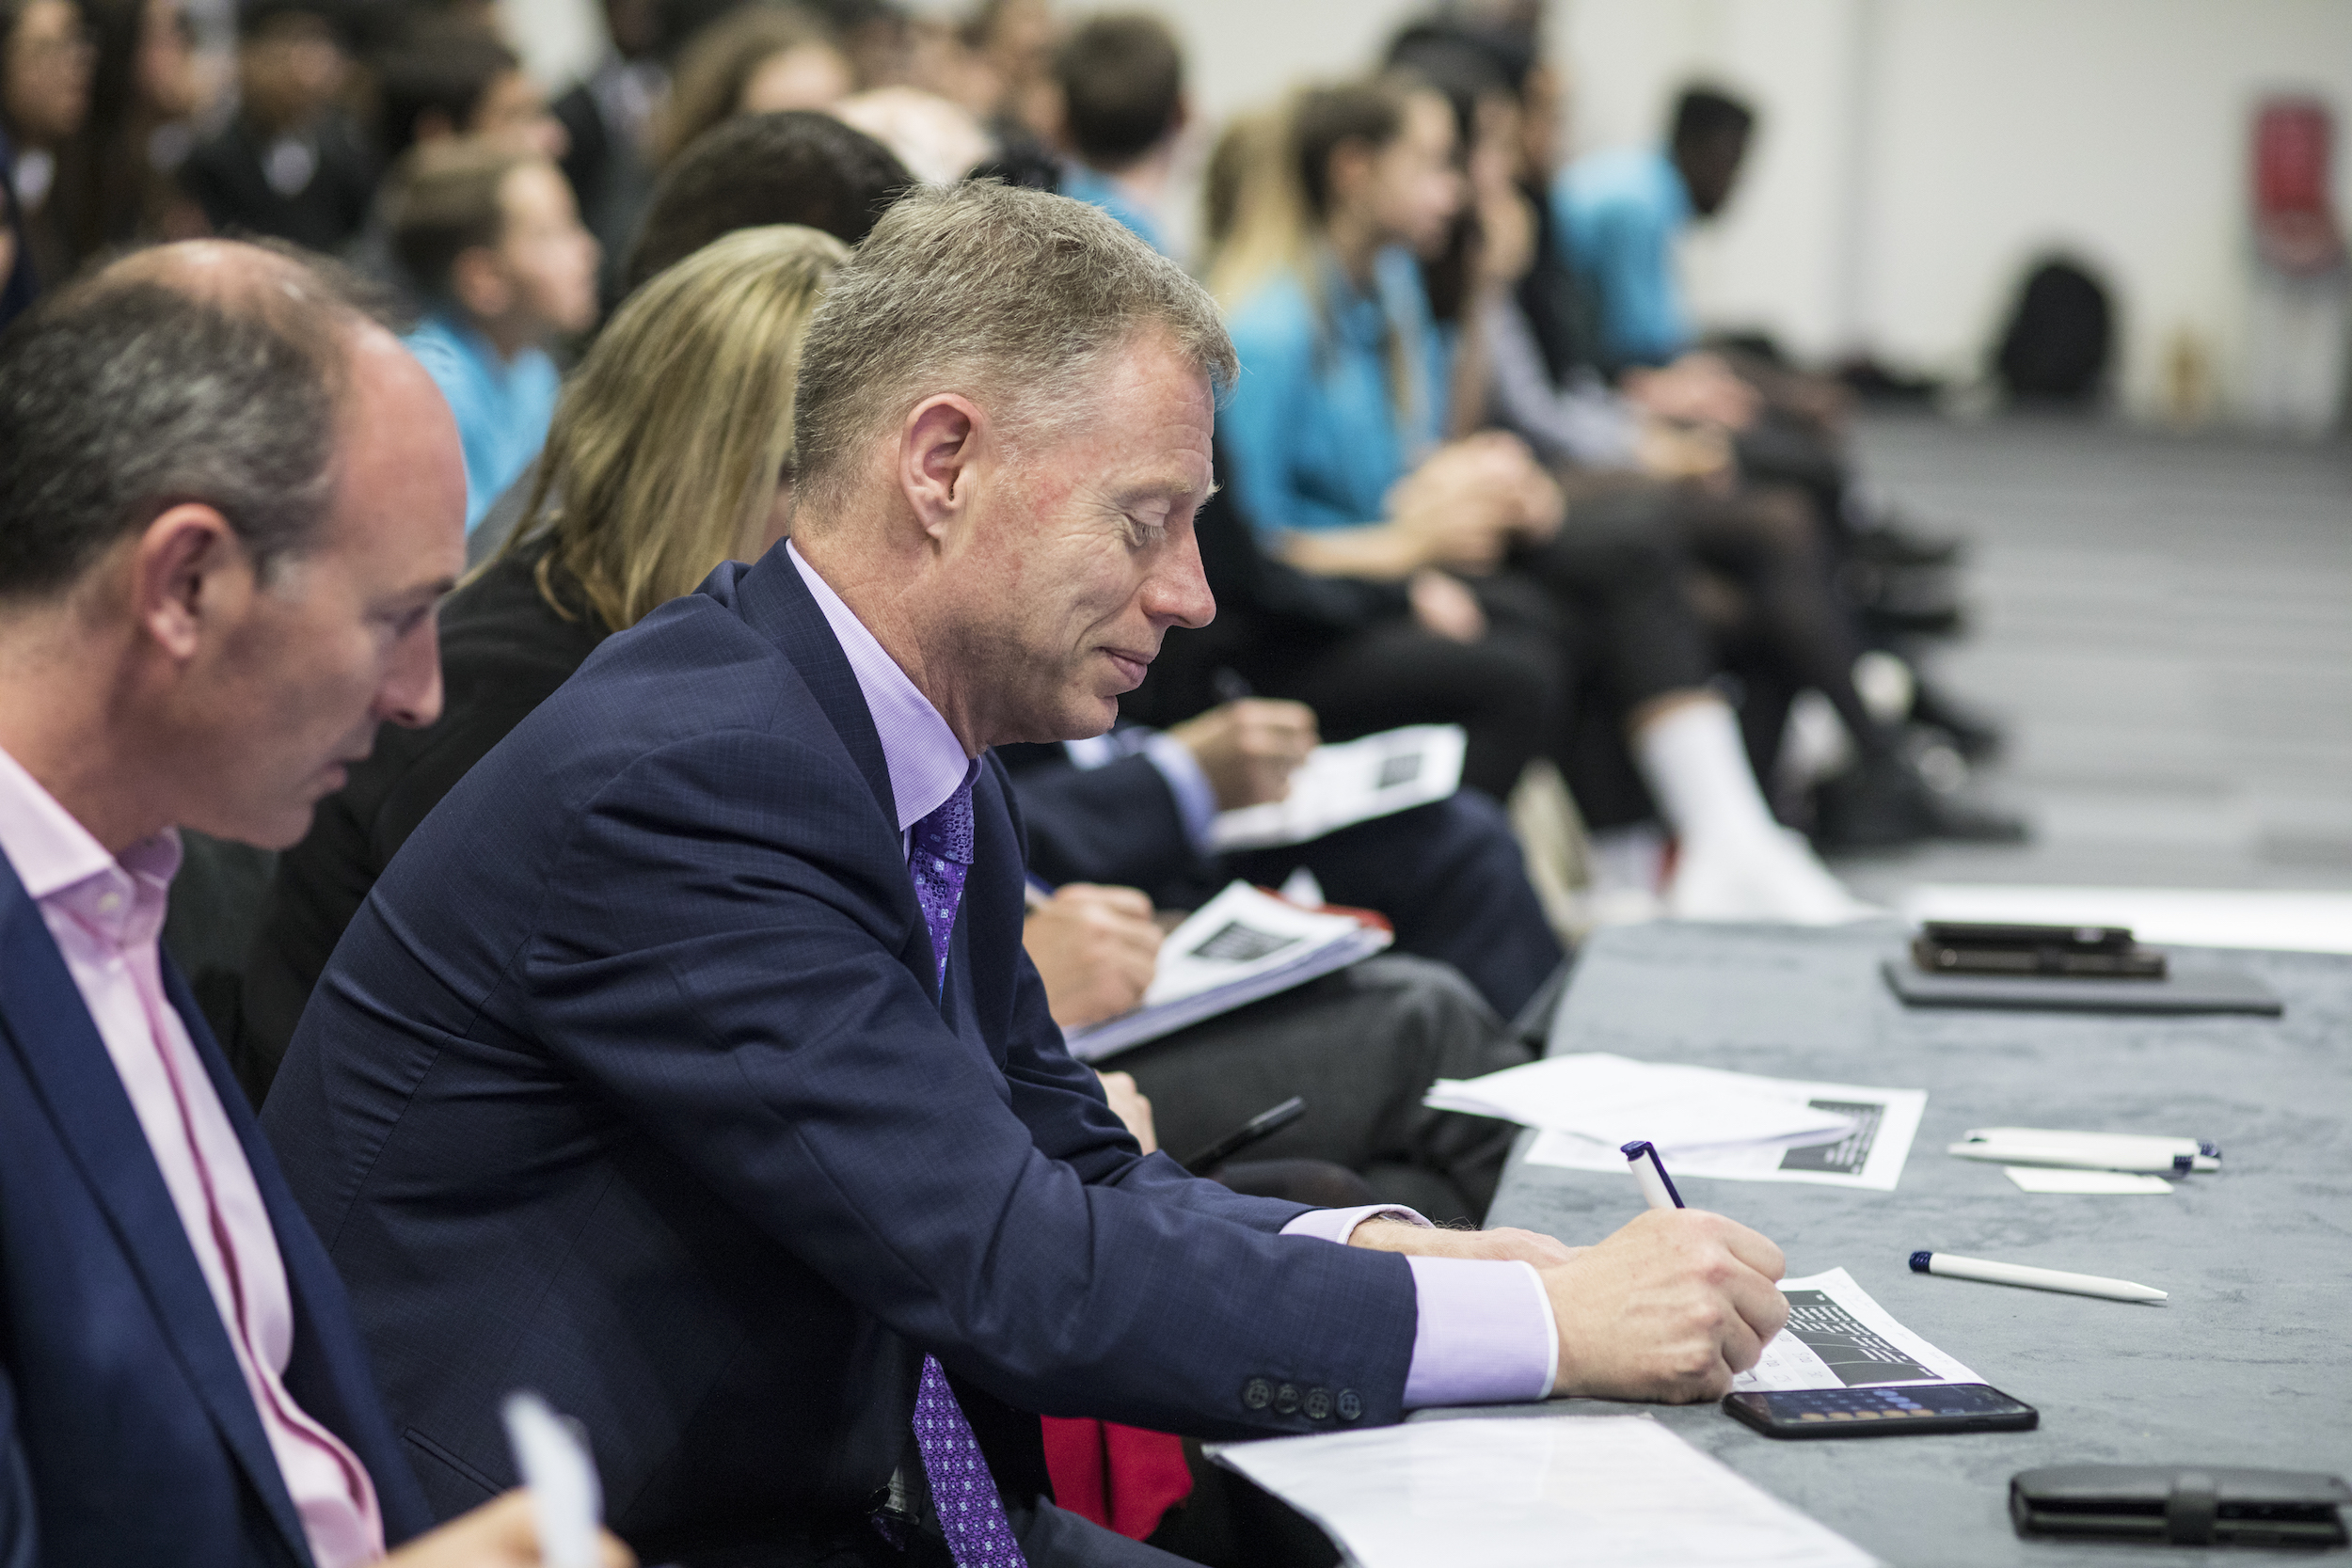 LCY CEO Robert Sinclair sitting on a judging panel, with a slight smile on his face making notes